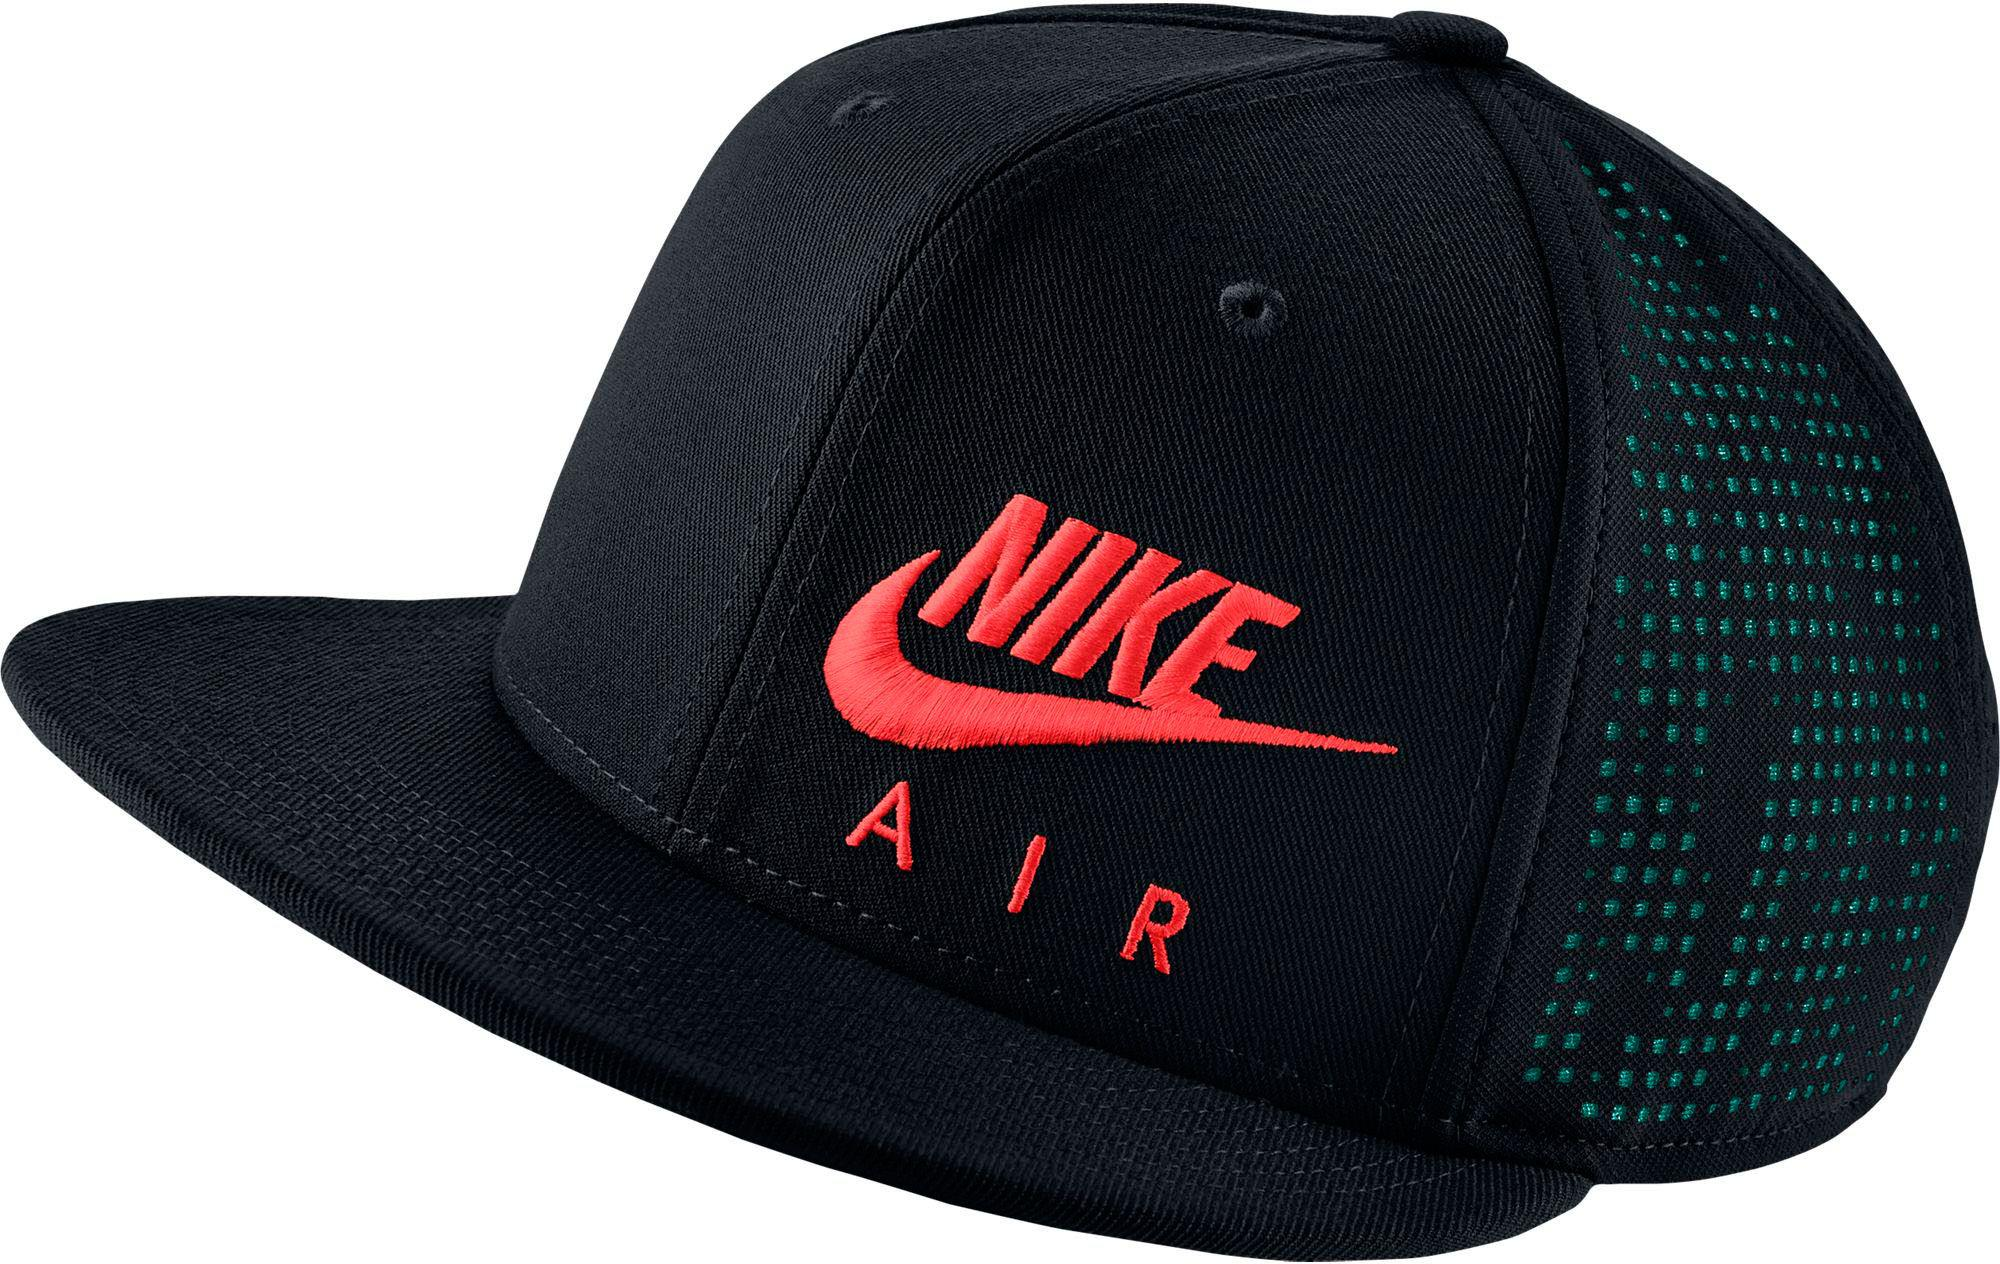 Lyst - Nike Air Hybrid True Adjustable Snapback Hat in Black for Men f4bf9eb9df3